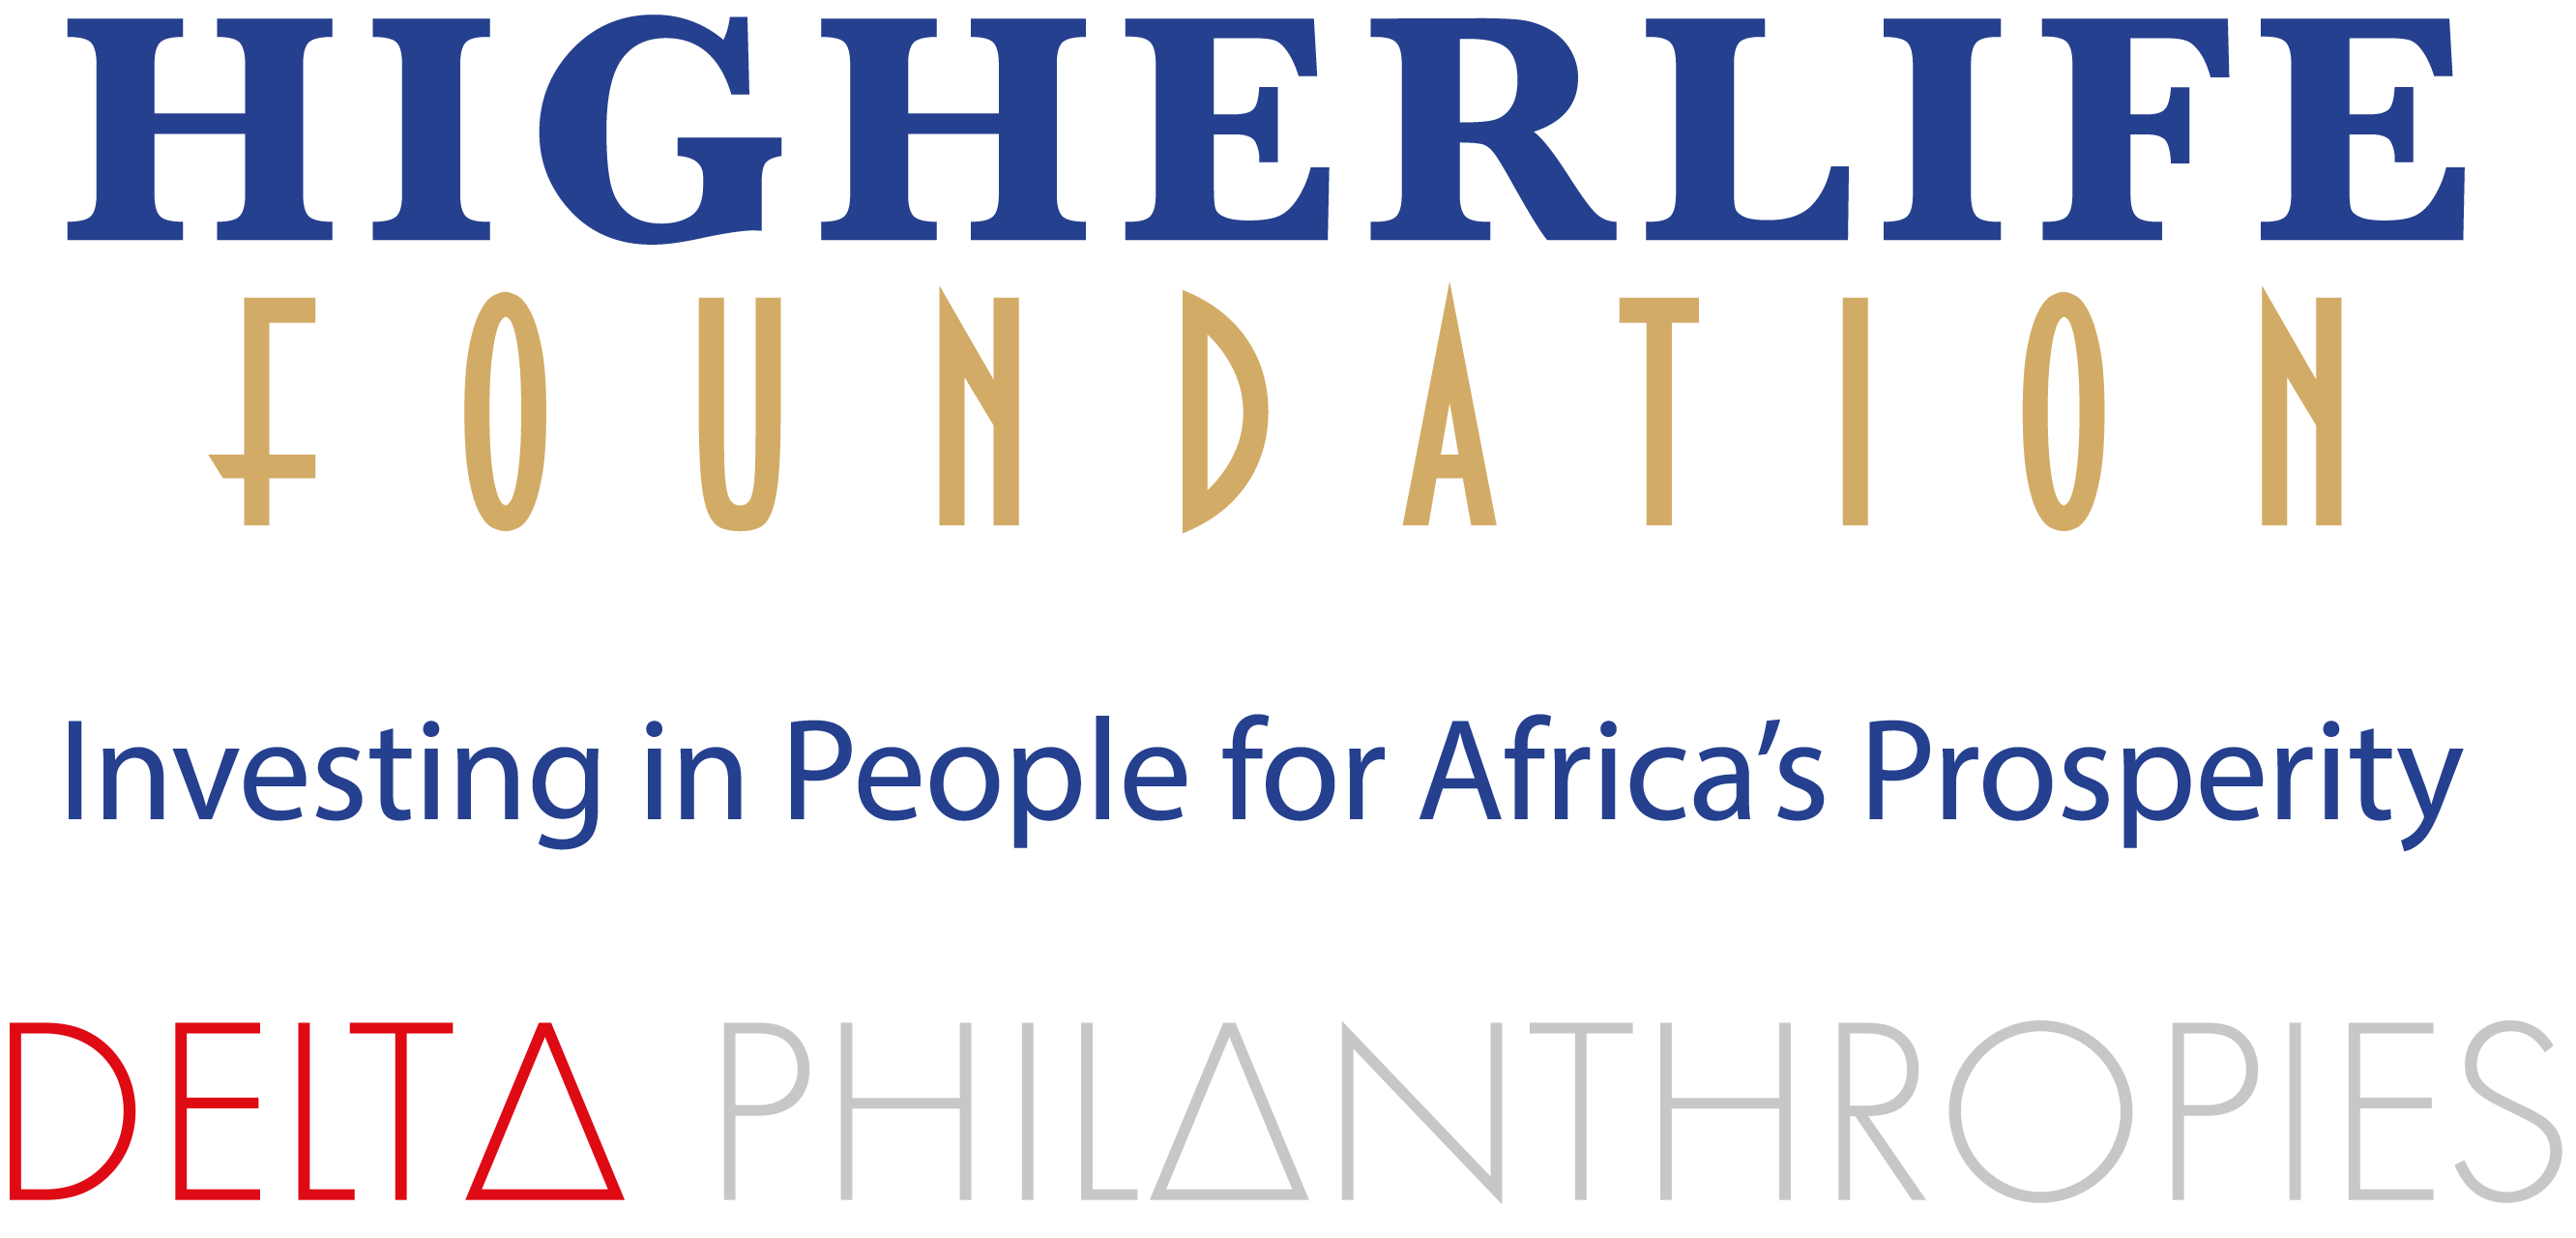 Higherlife Foundation